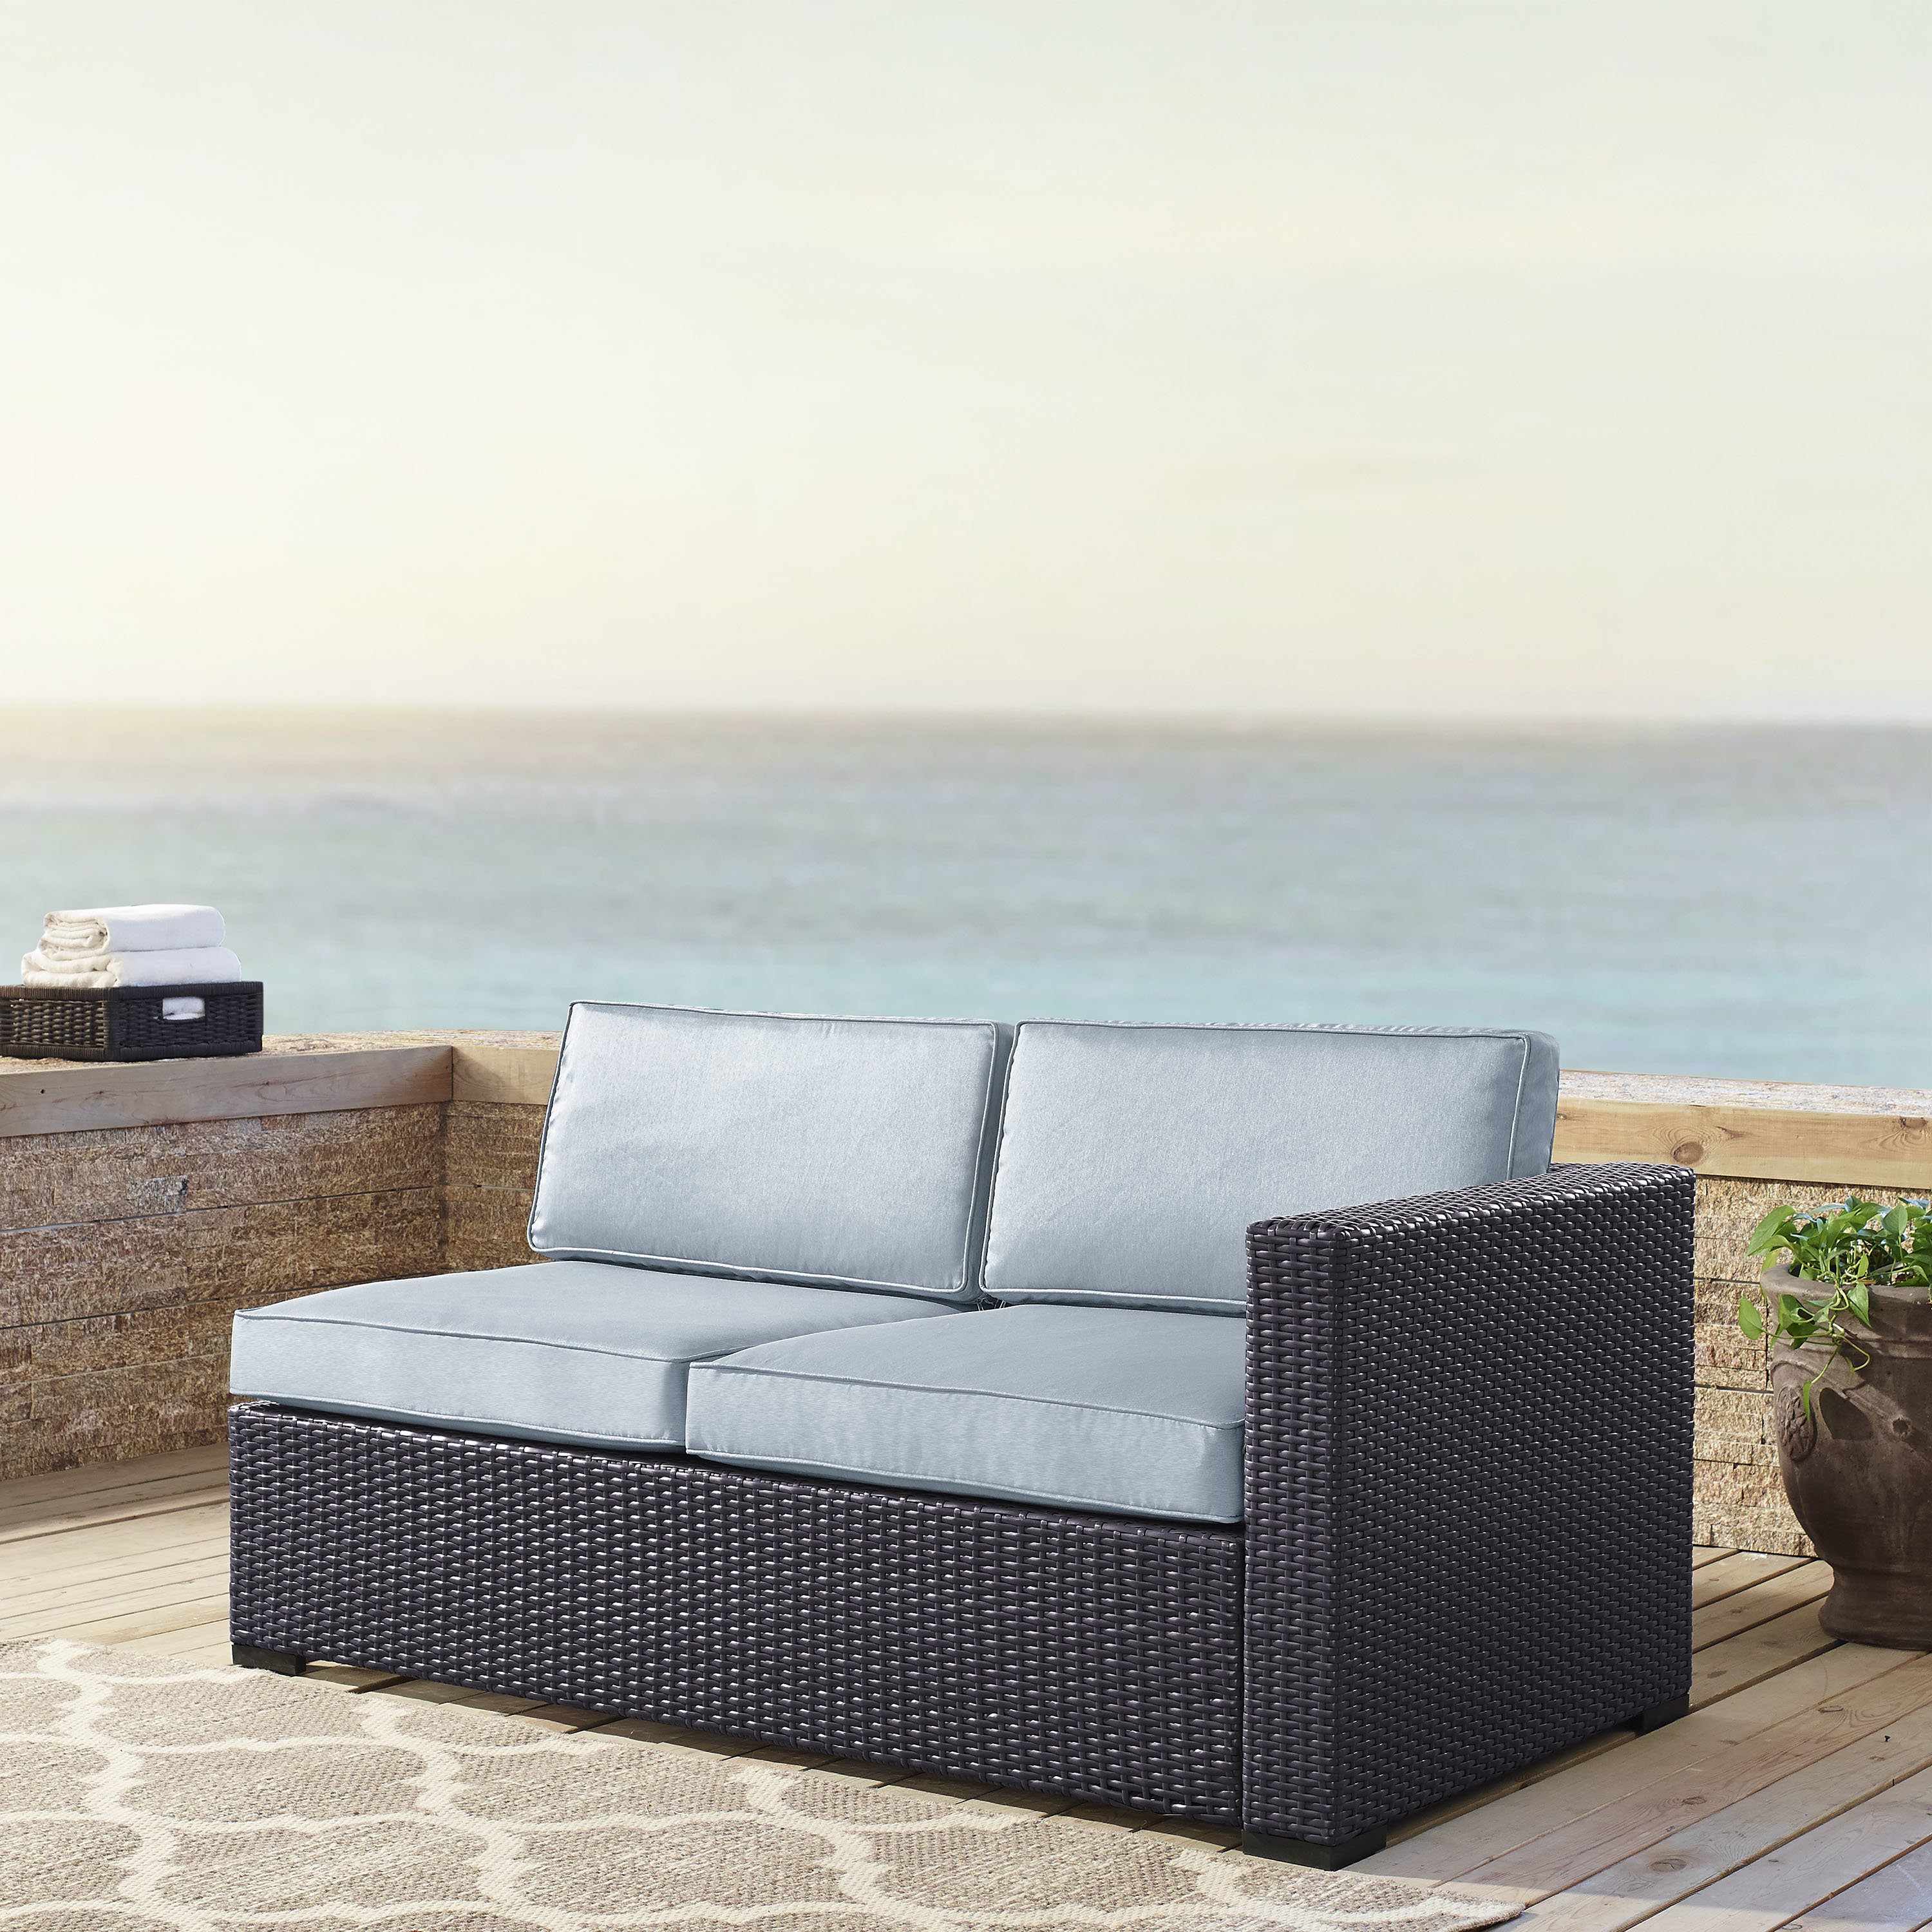 Most Up To Date Seaton Loveseat With Cushions For Mendelson Loveseats With Cushion (View 14 of 20)